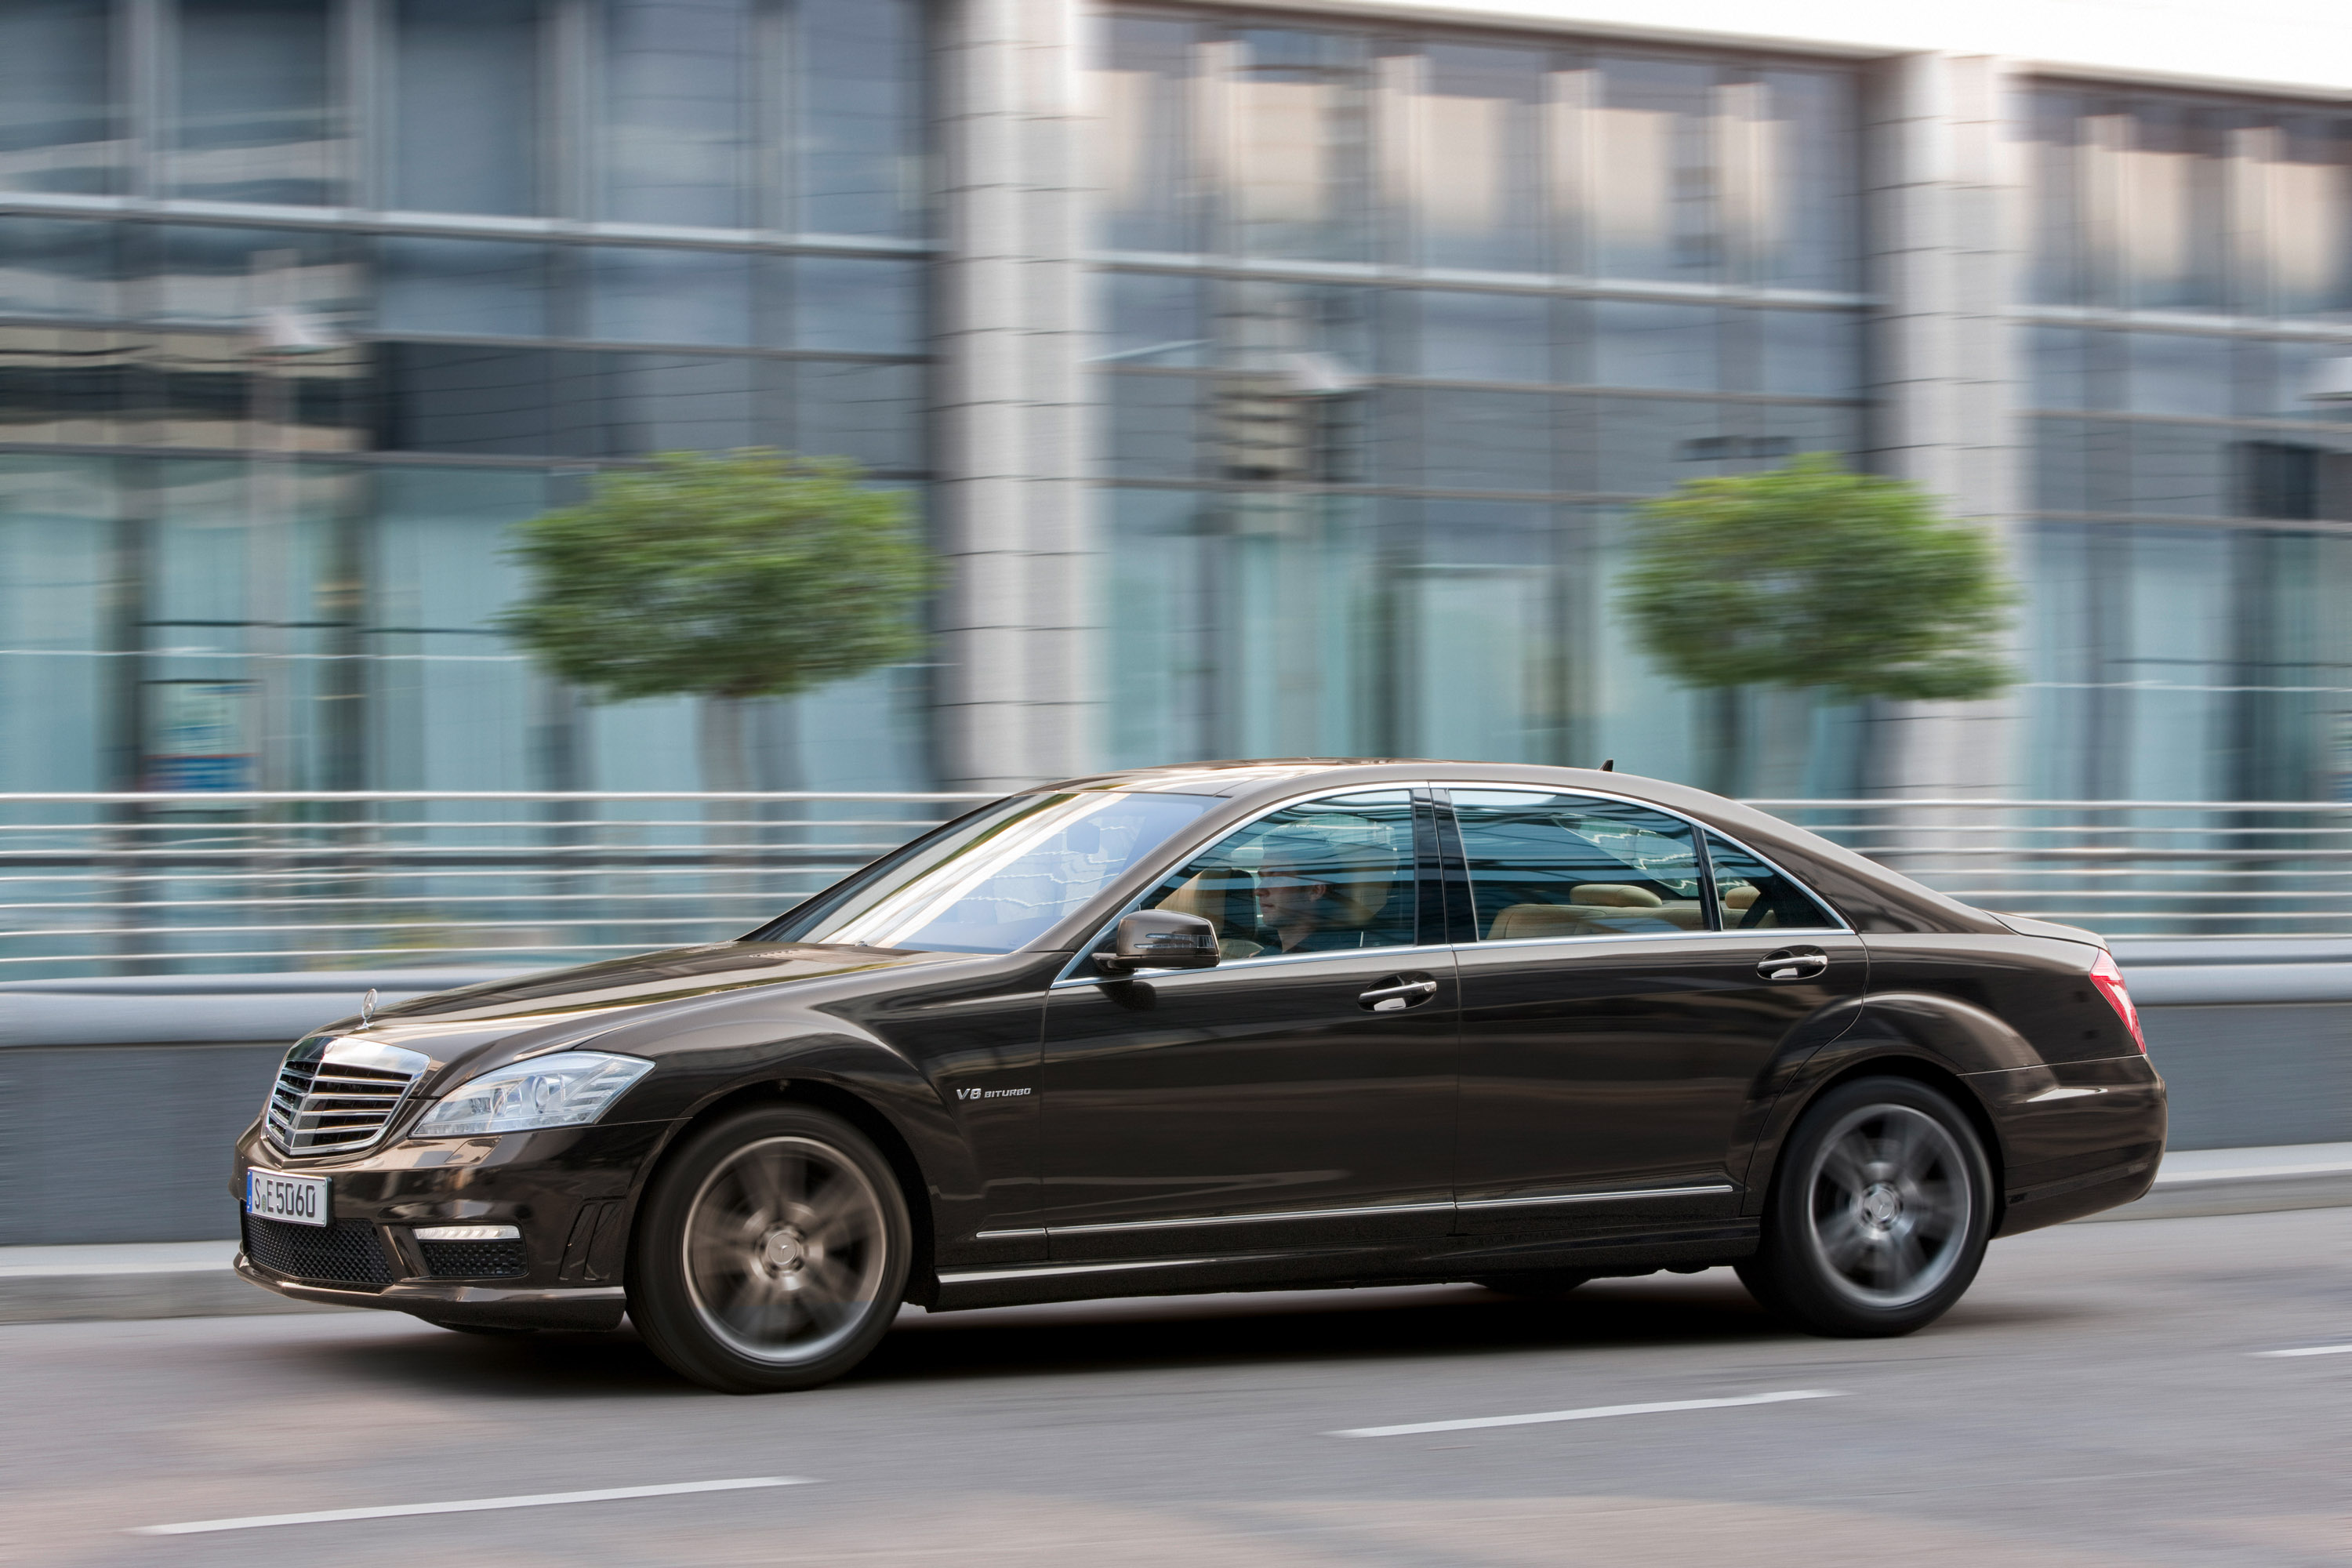 Mercedes-Benz S63 AMG - The ultimate high-performance седан - фотография №1